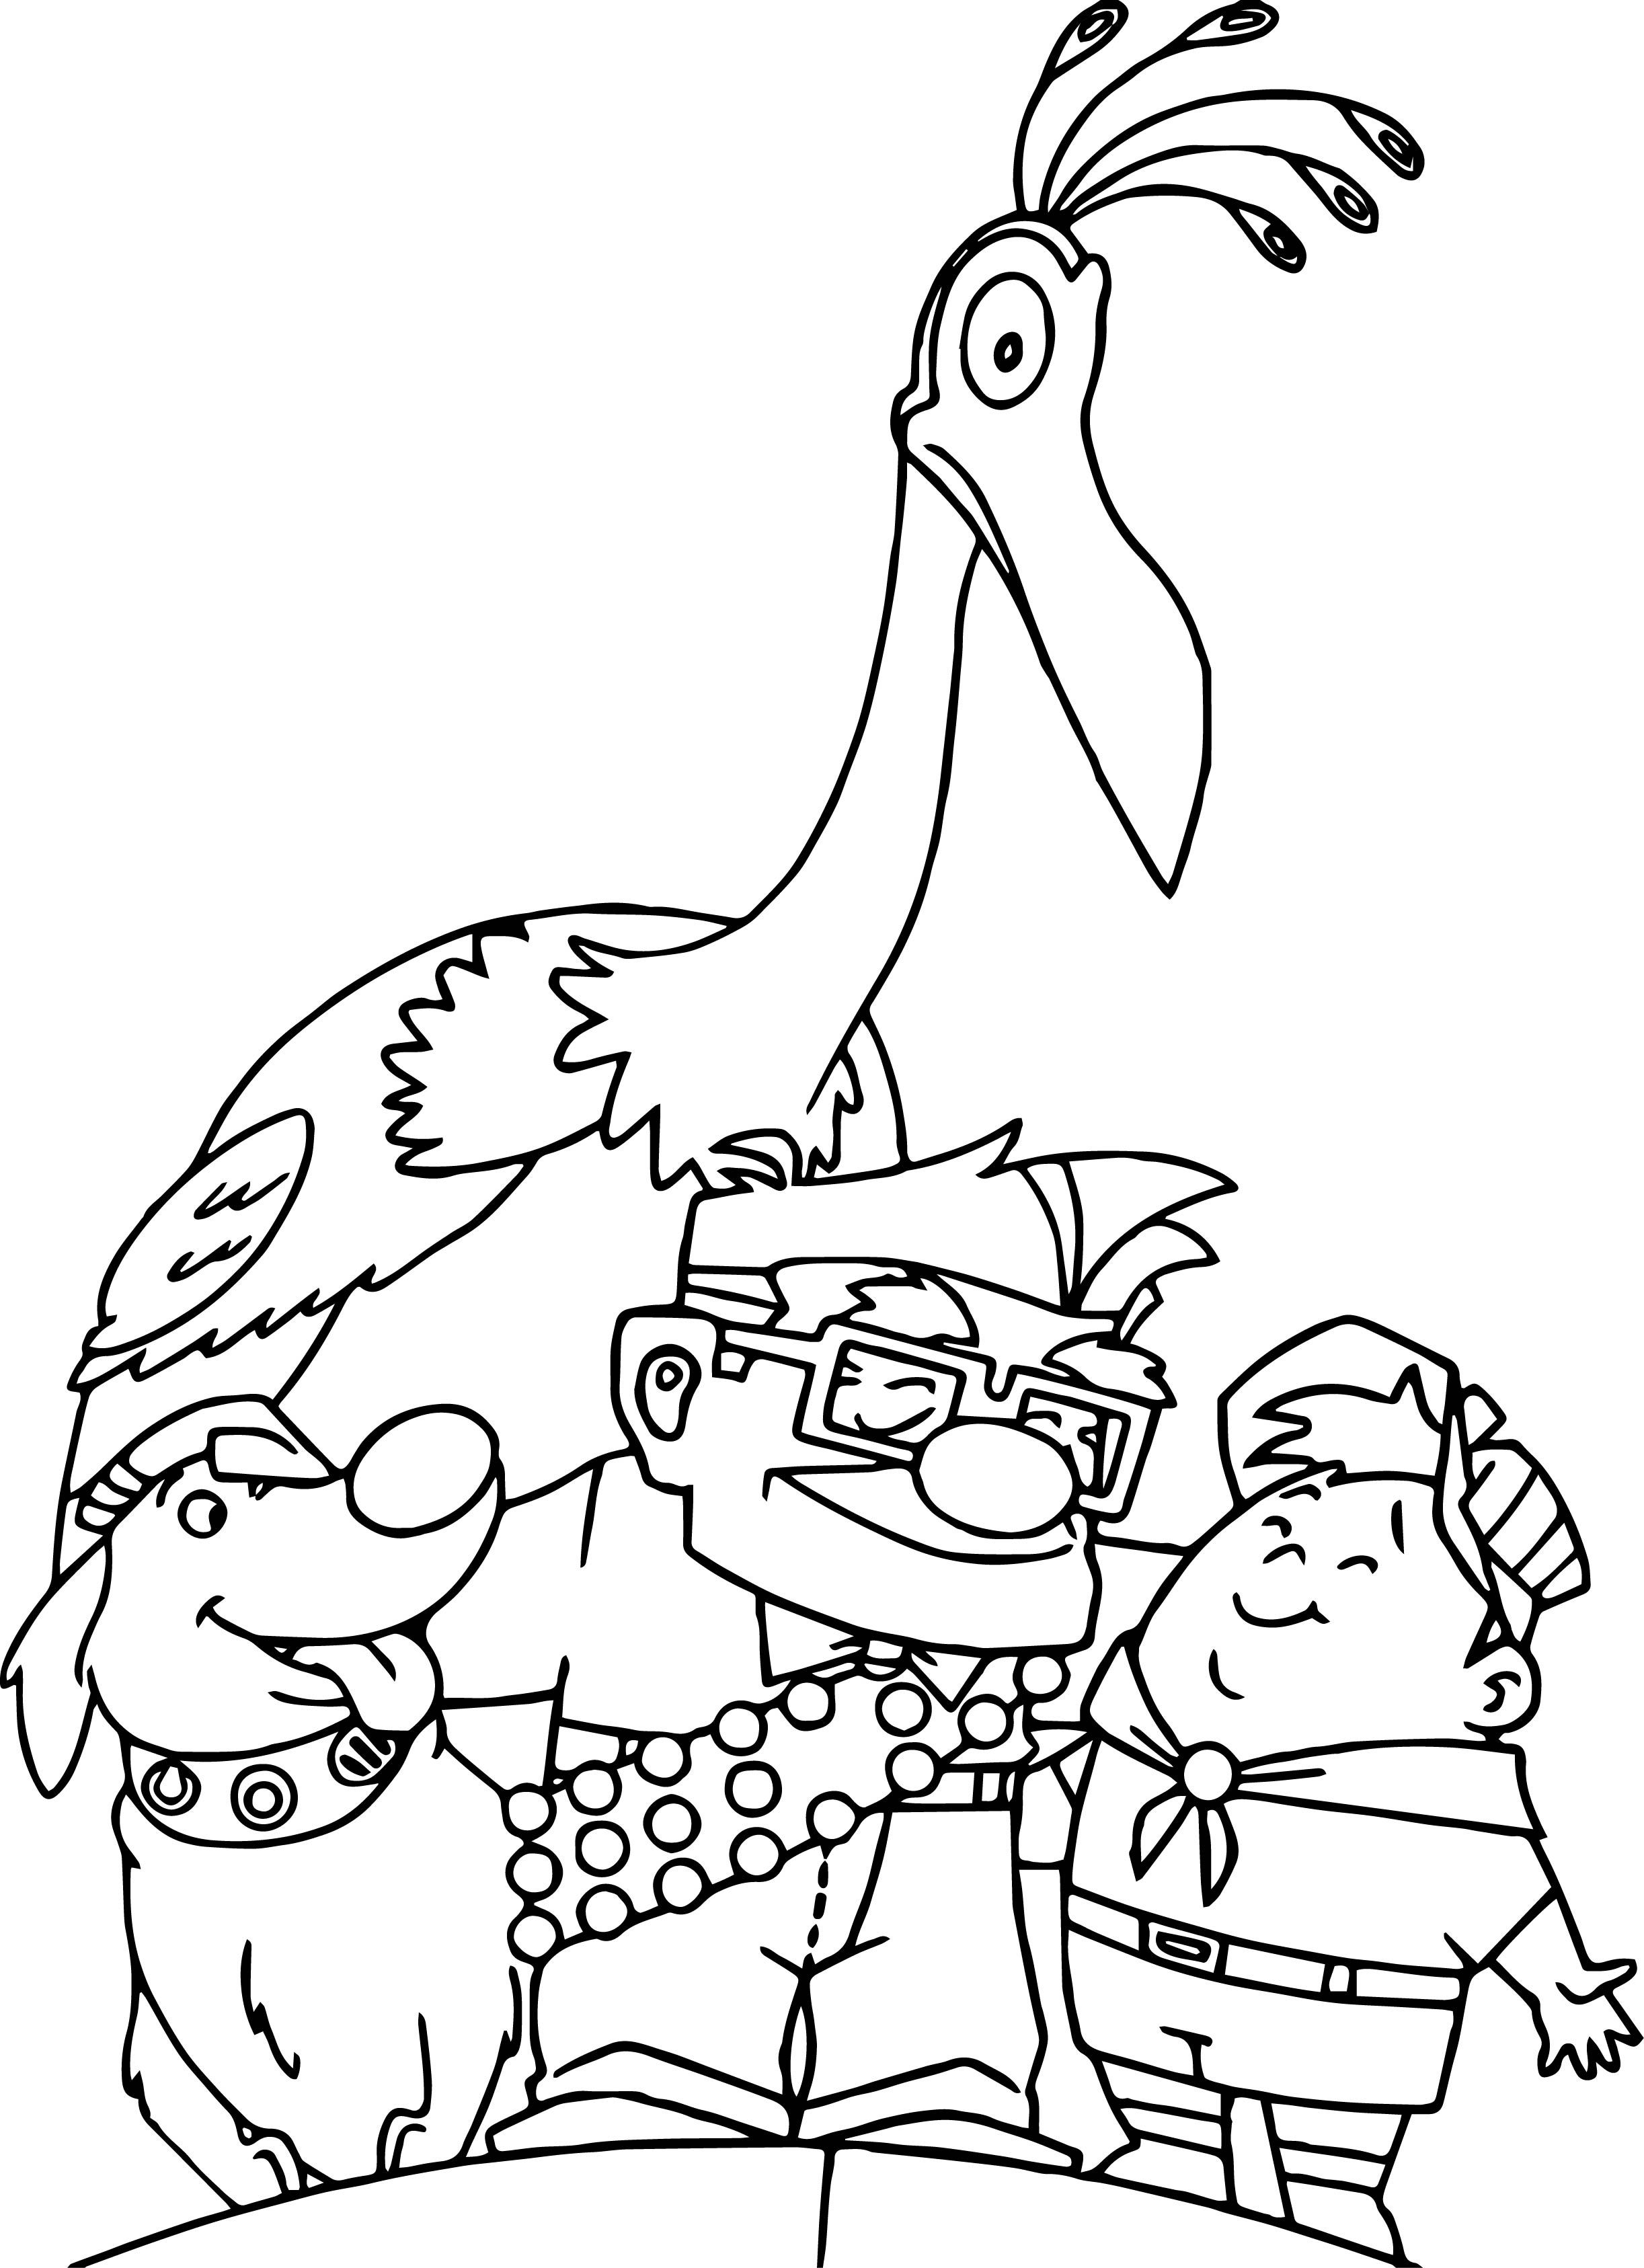 Disney Pixar Up Coloring Pages | Disney Coloring Pages